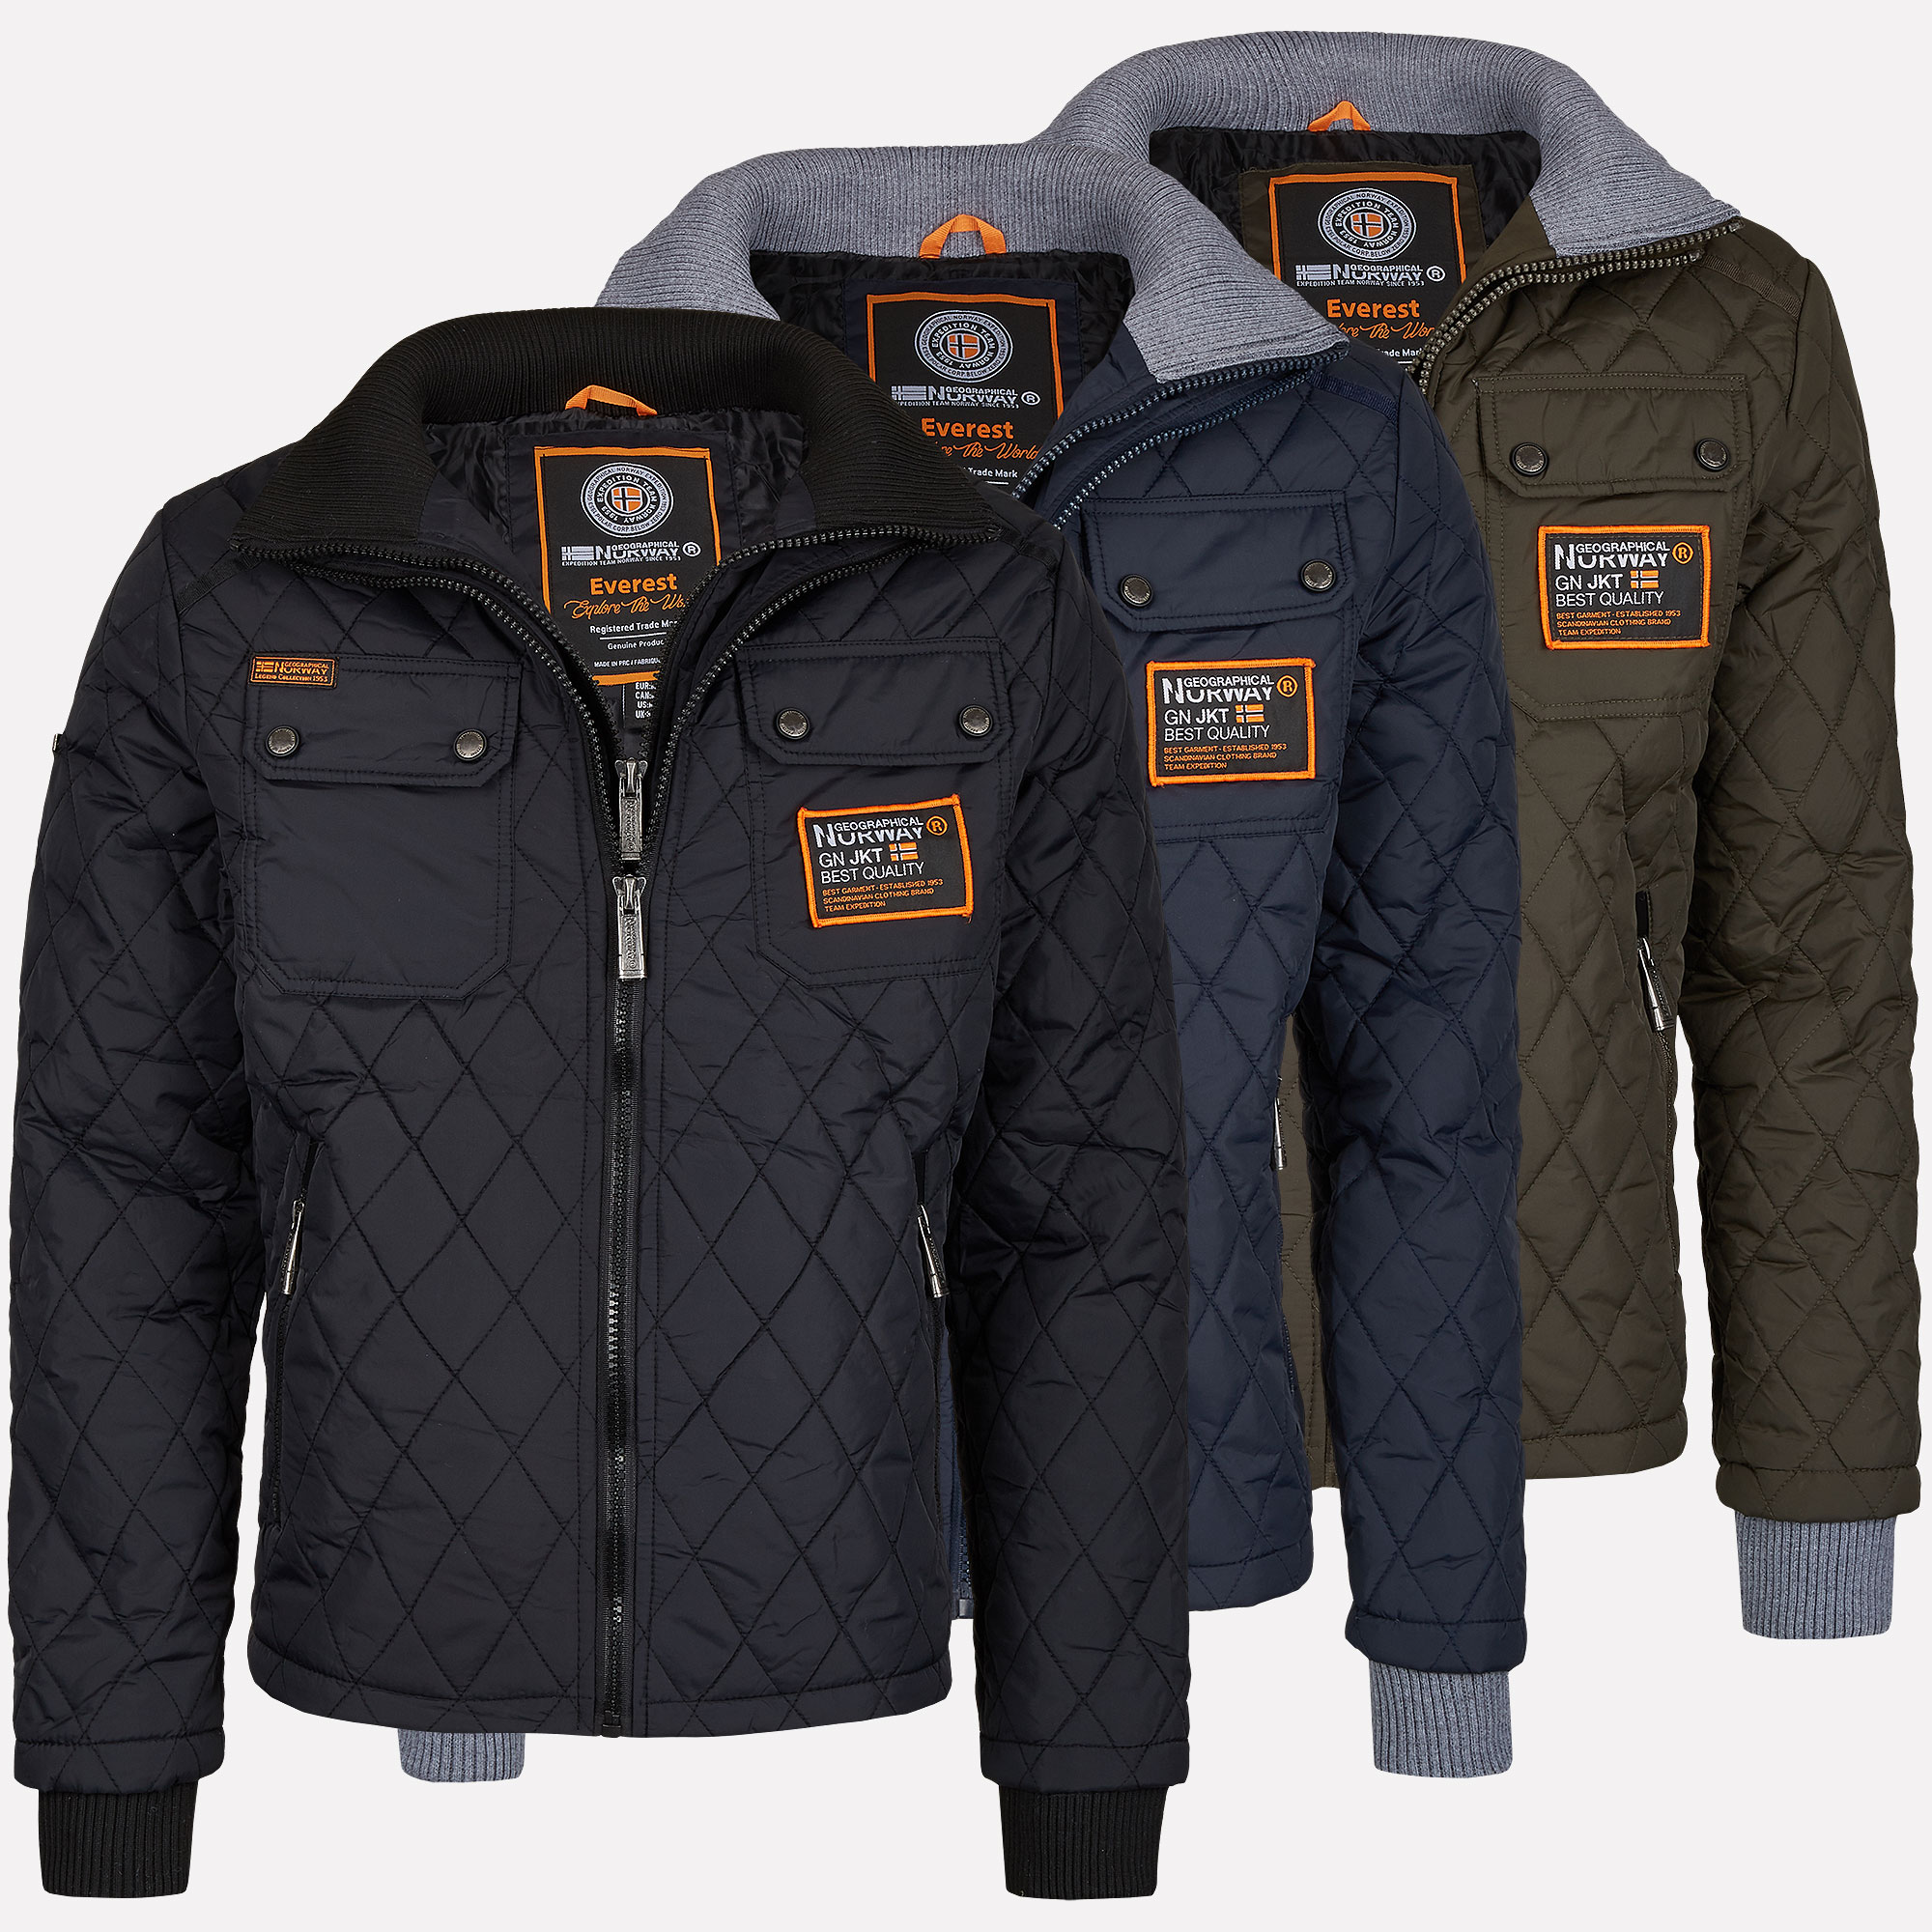 Geographical Transition Outdoor original Norway Details Men's about Jacket show Jacket Quilted title Quilted 5RjL4Aq3